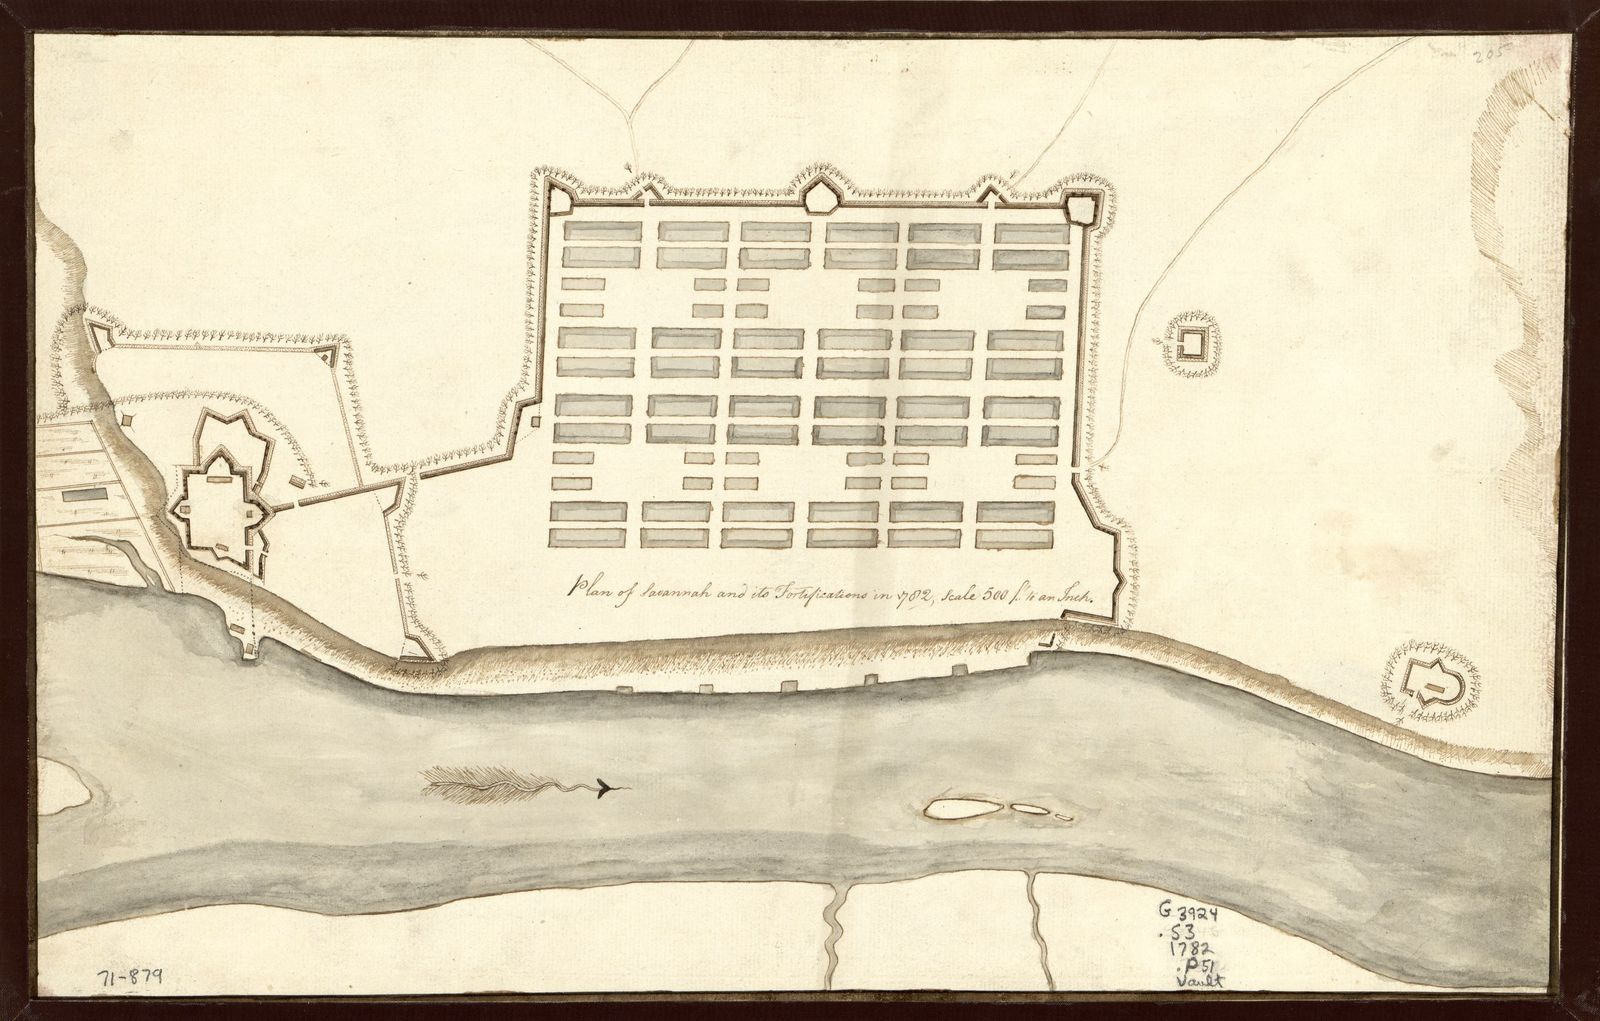 Plan of Savannah and its fortifications in 1782.